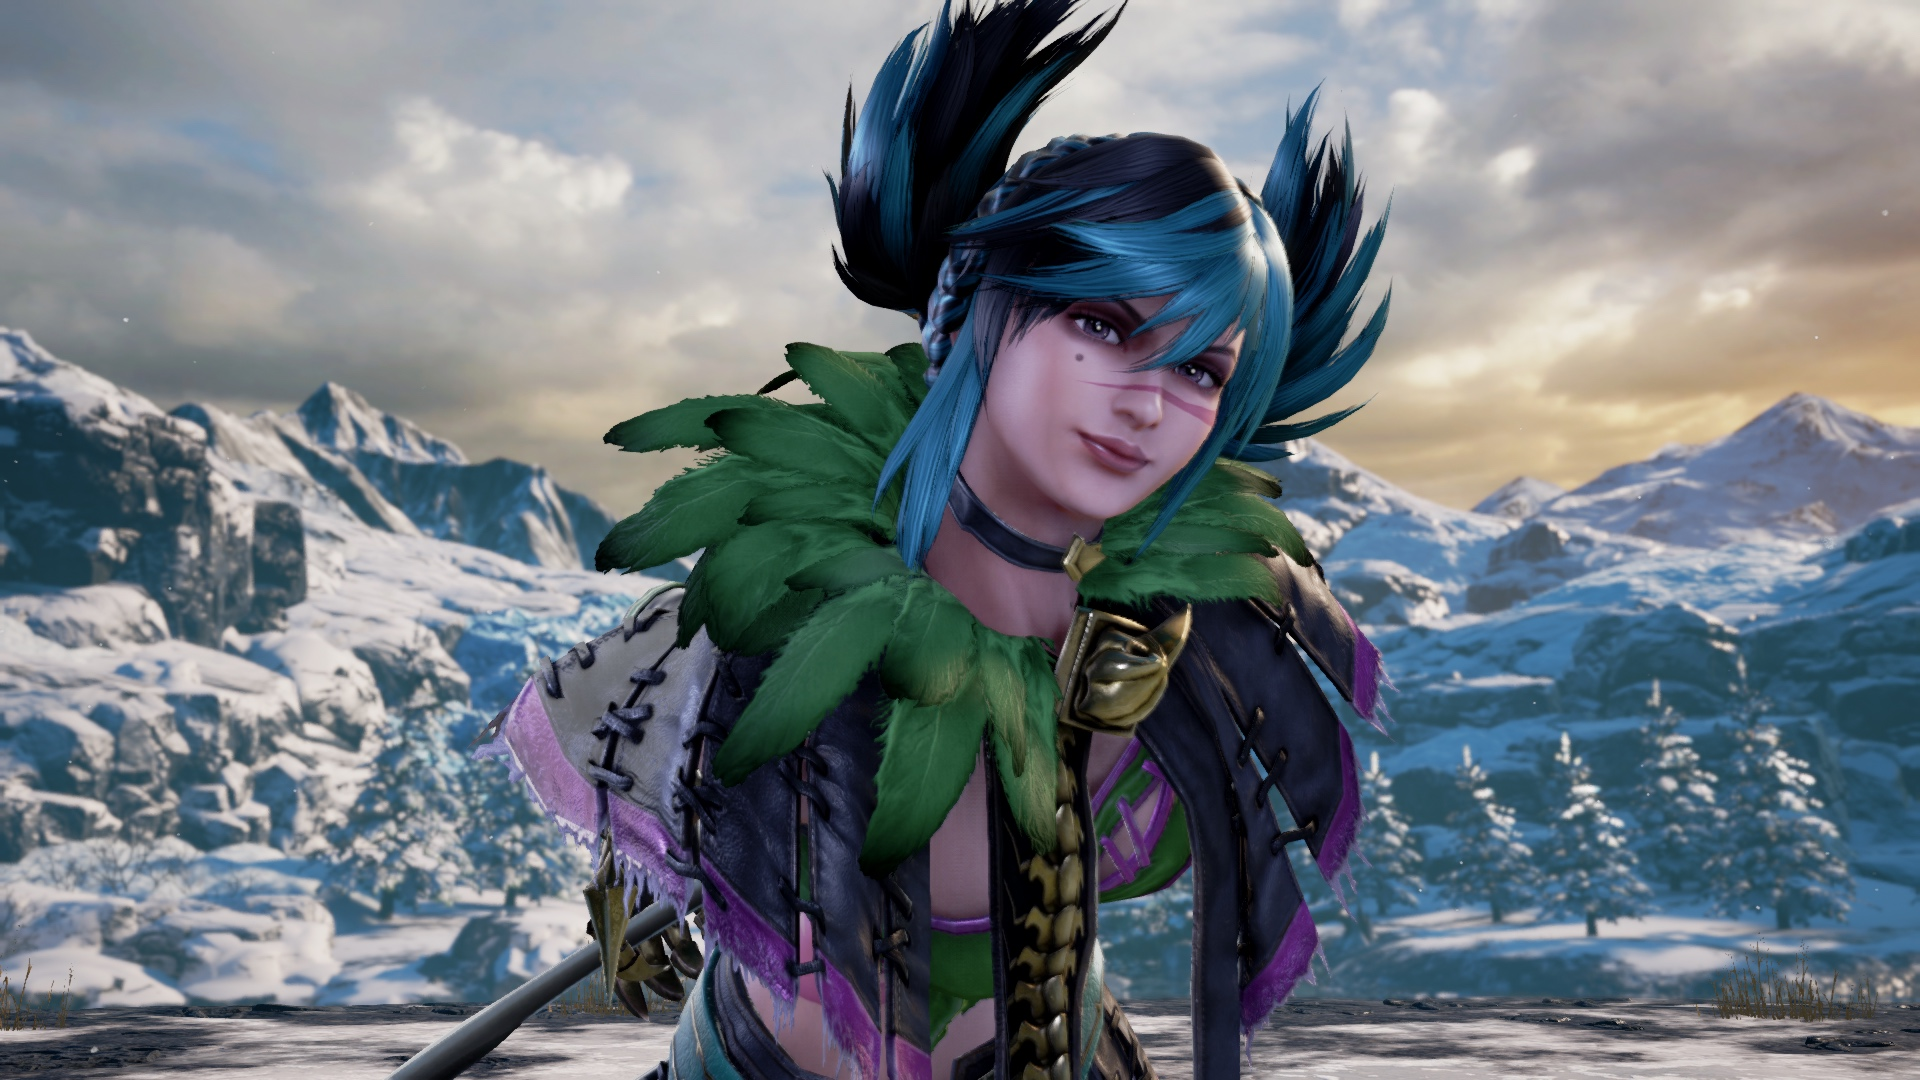 Soulcalibur 6 will have a custom character creator and Tira as DLC